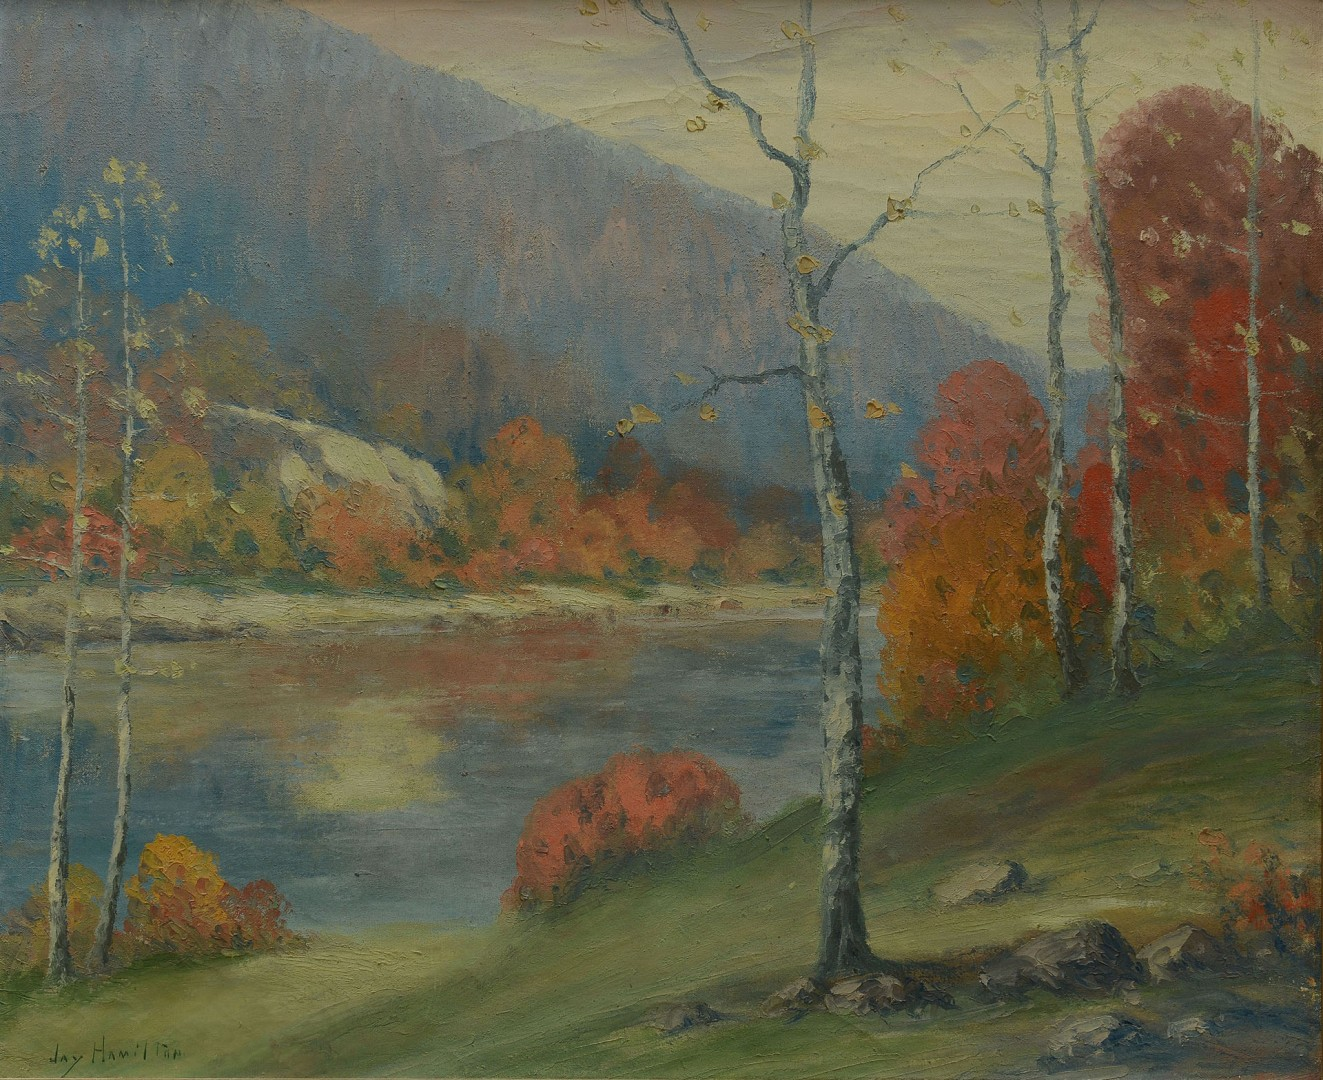 Autumn Landscape o/c, possibly E. Tenn.